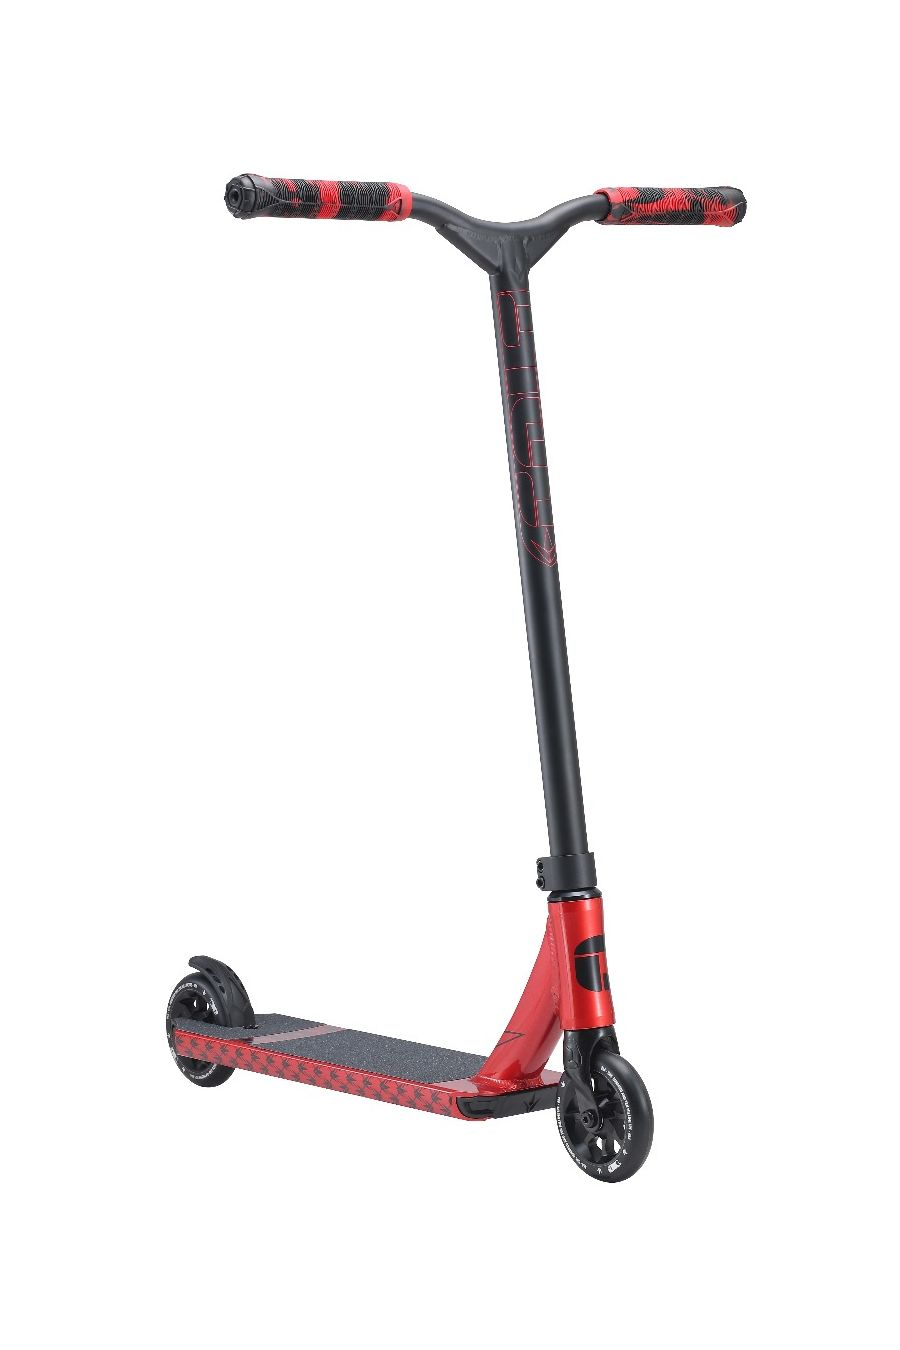 Envy Colt S4 Complete Scooter (Red)